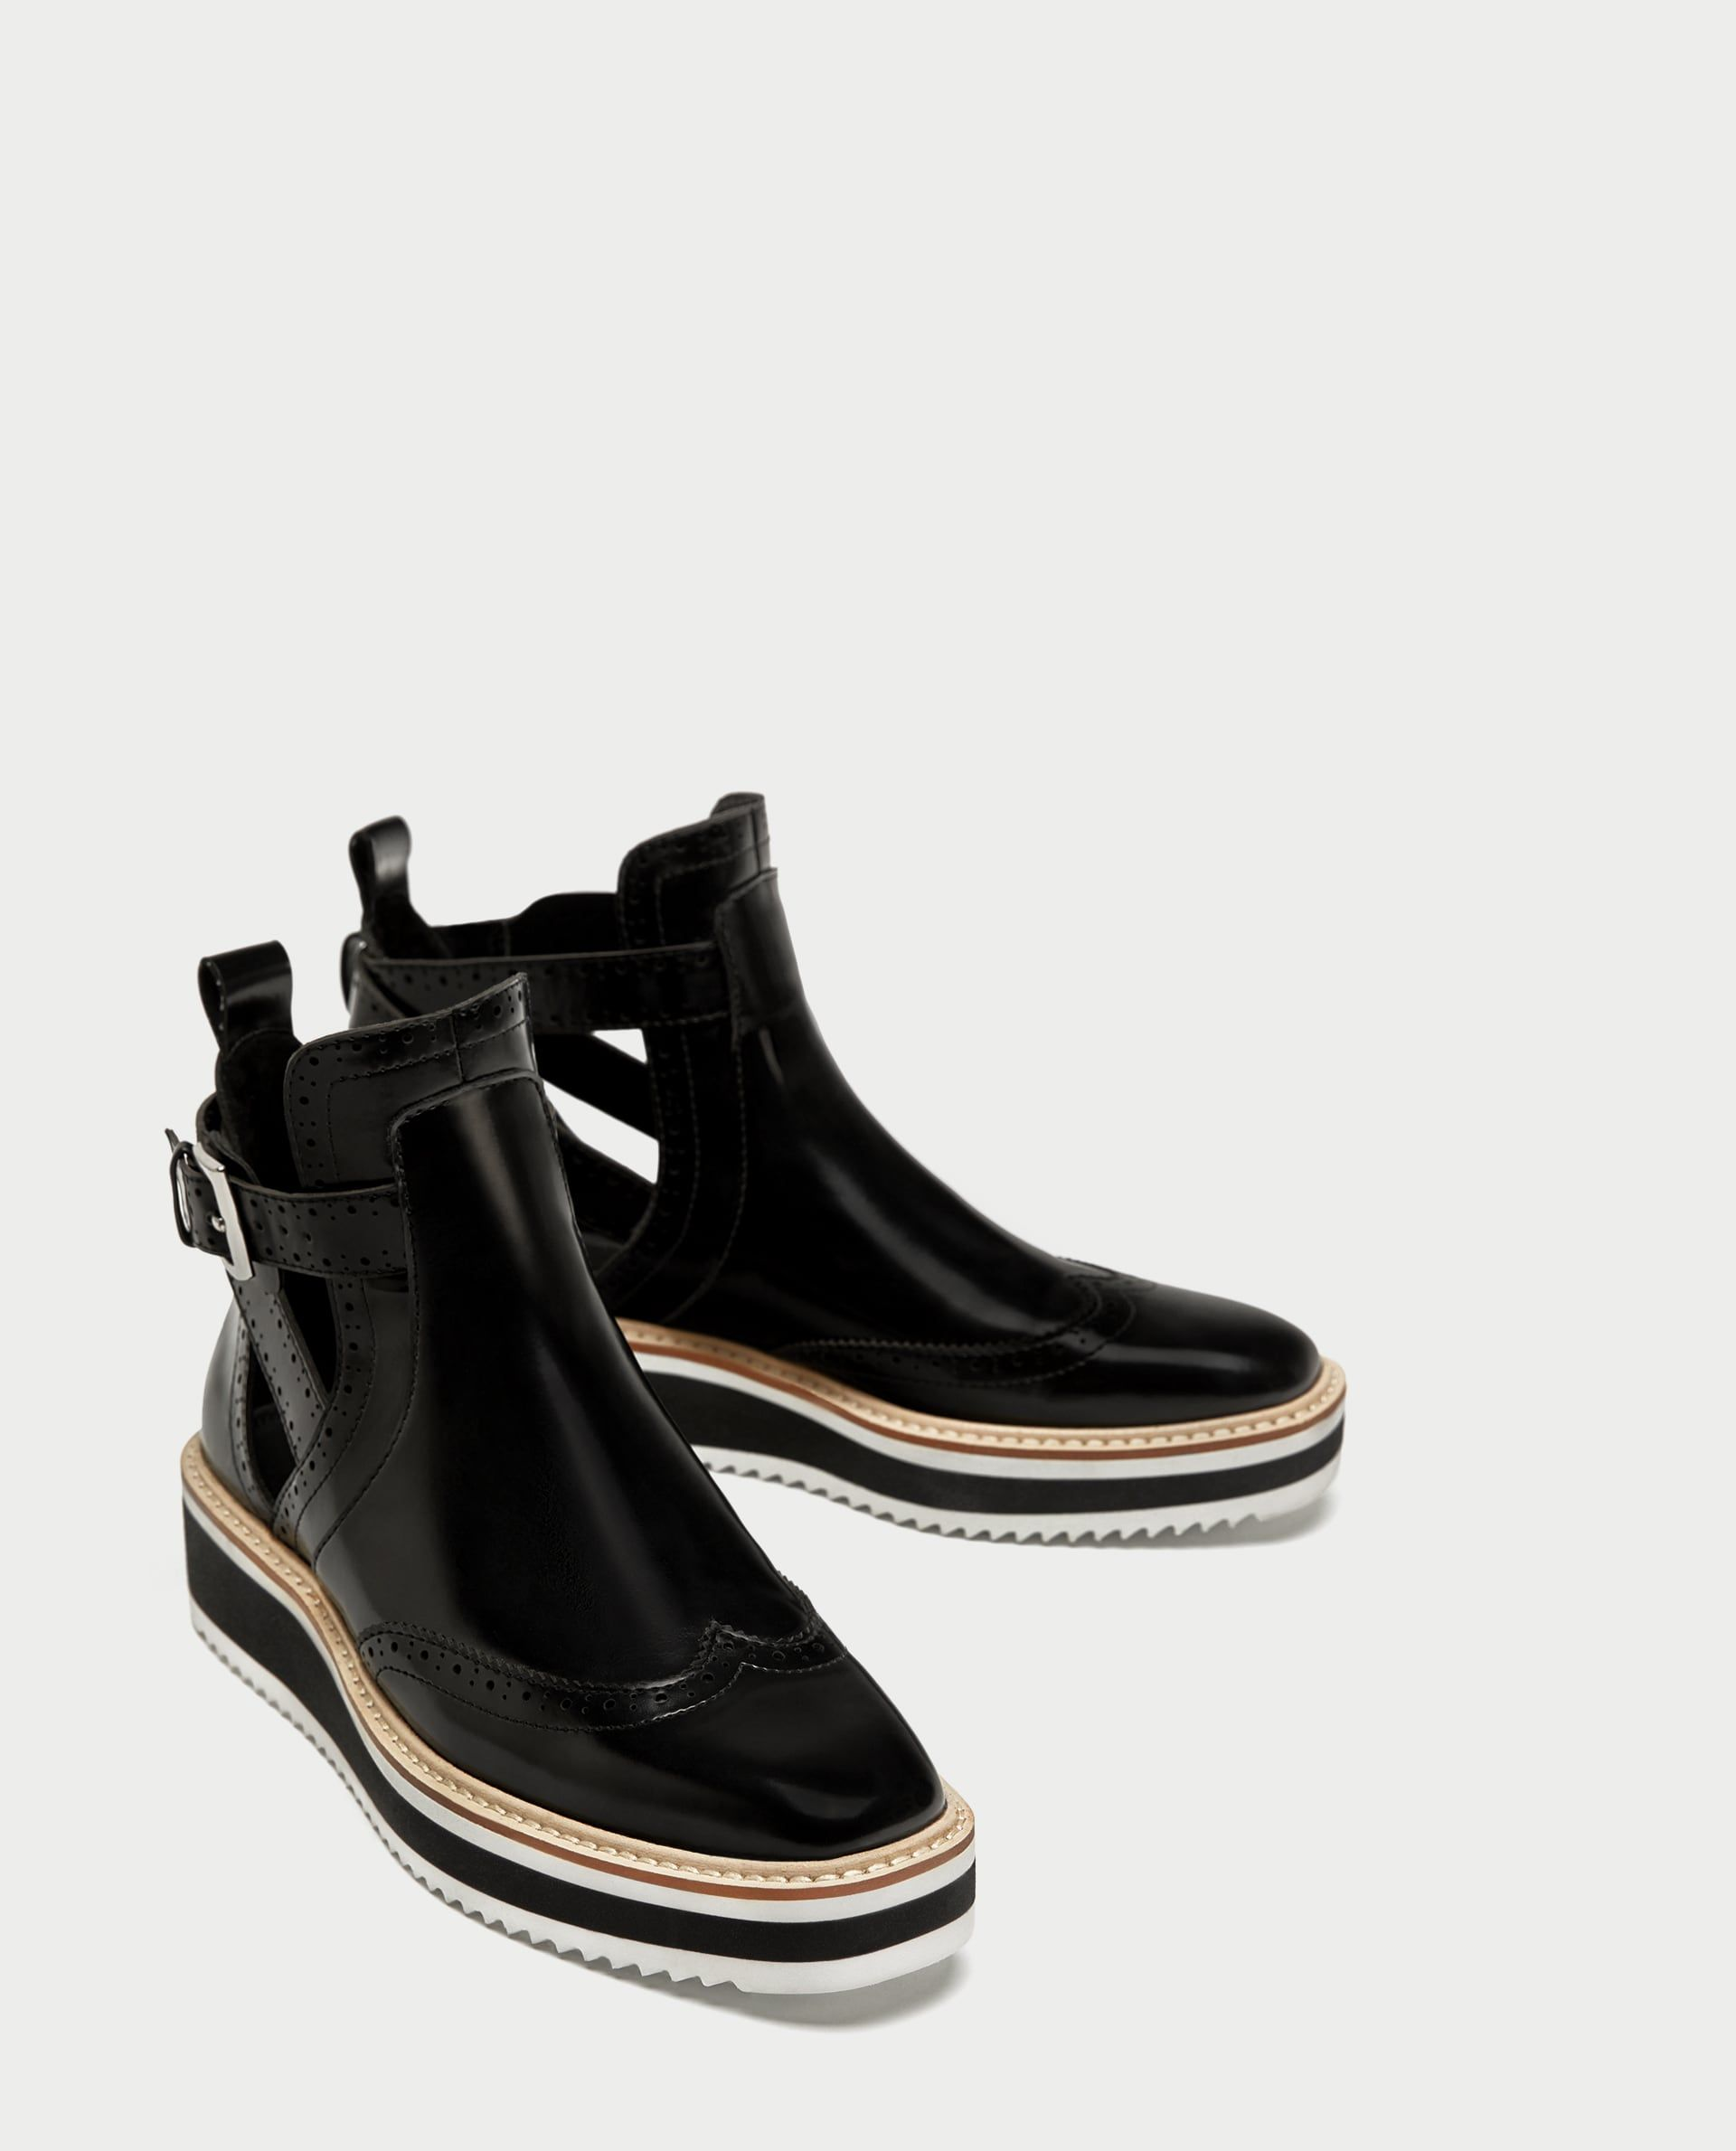 0cb2b90a61 Women's Shoes | New Collection Online | ZARA United States ...